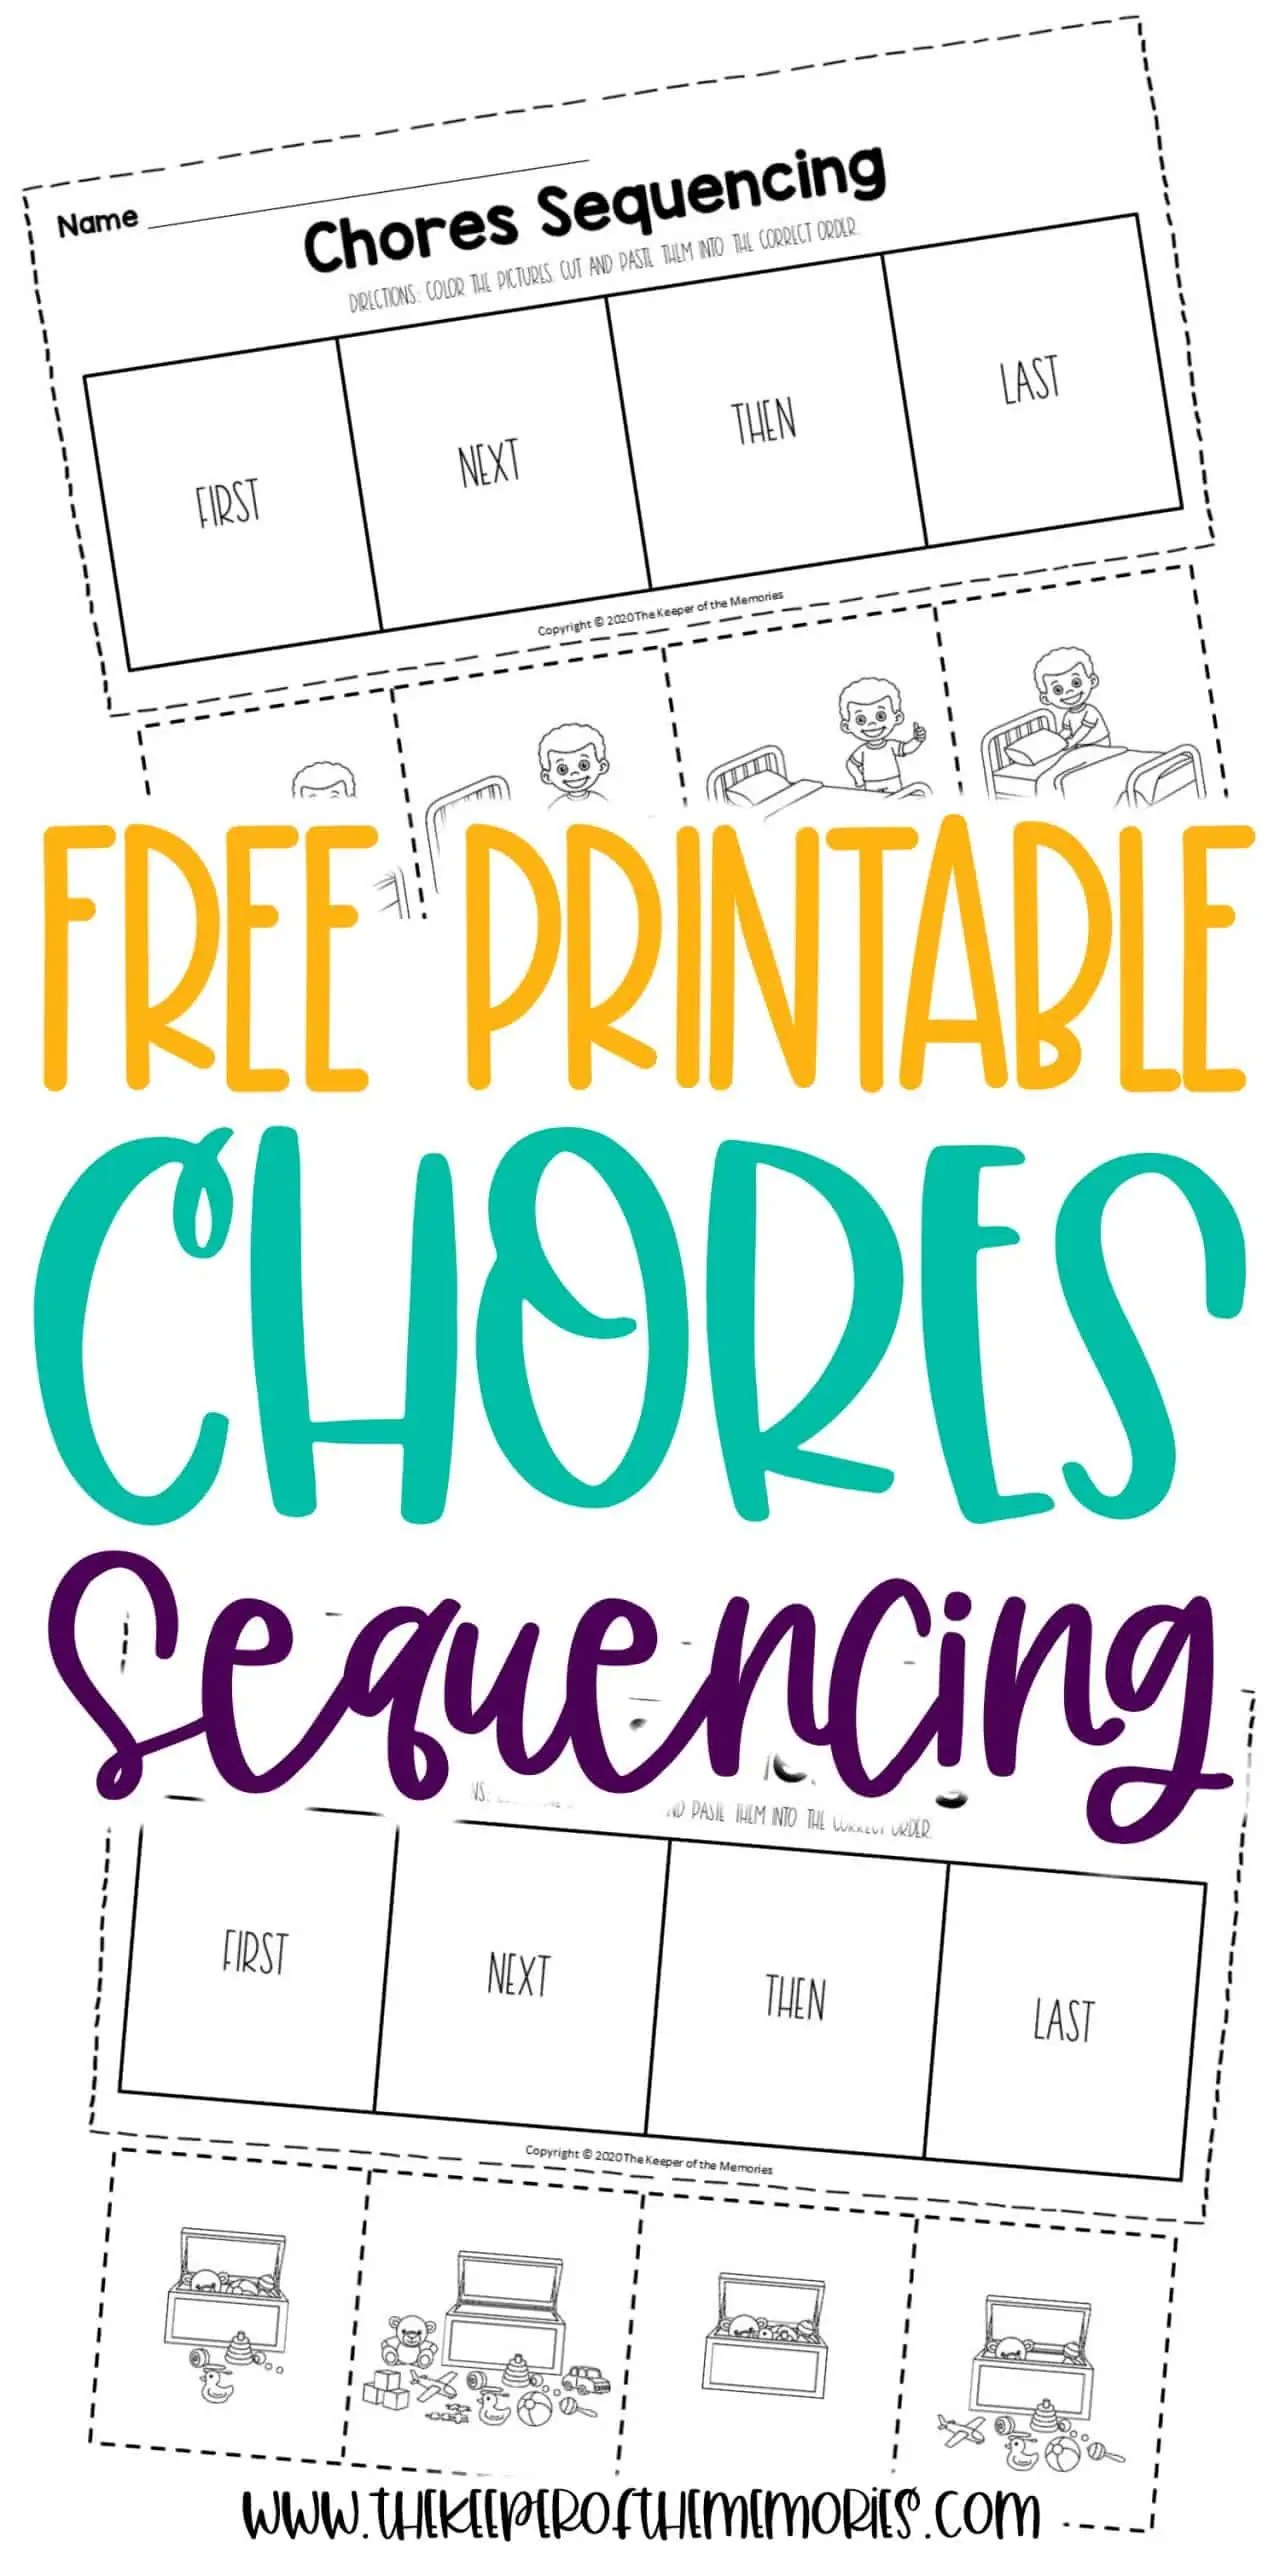 Free Printable Chores Sequencing Worksheets